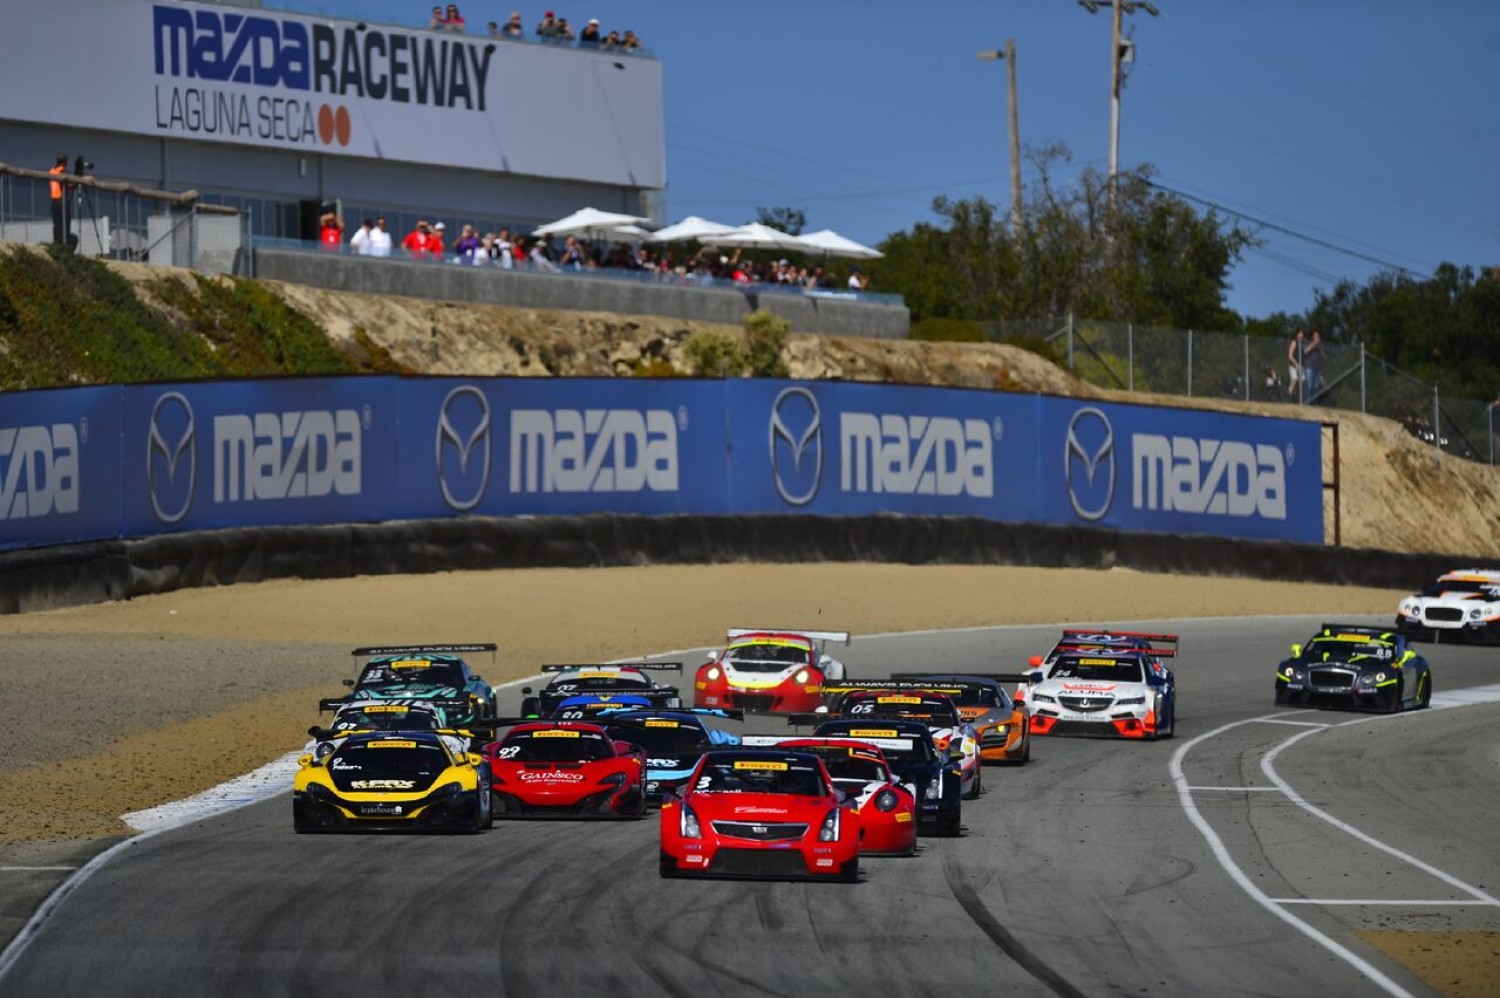 CBS Sports Network to Televise the Mazda Raceway California 8 Hours